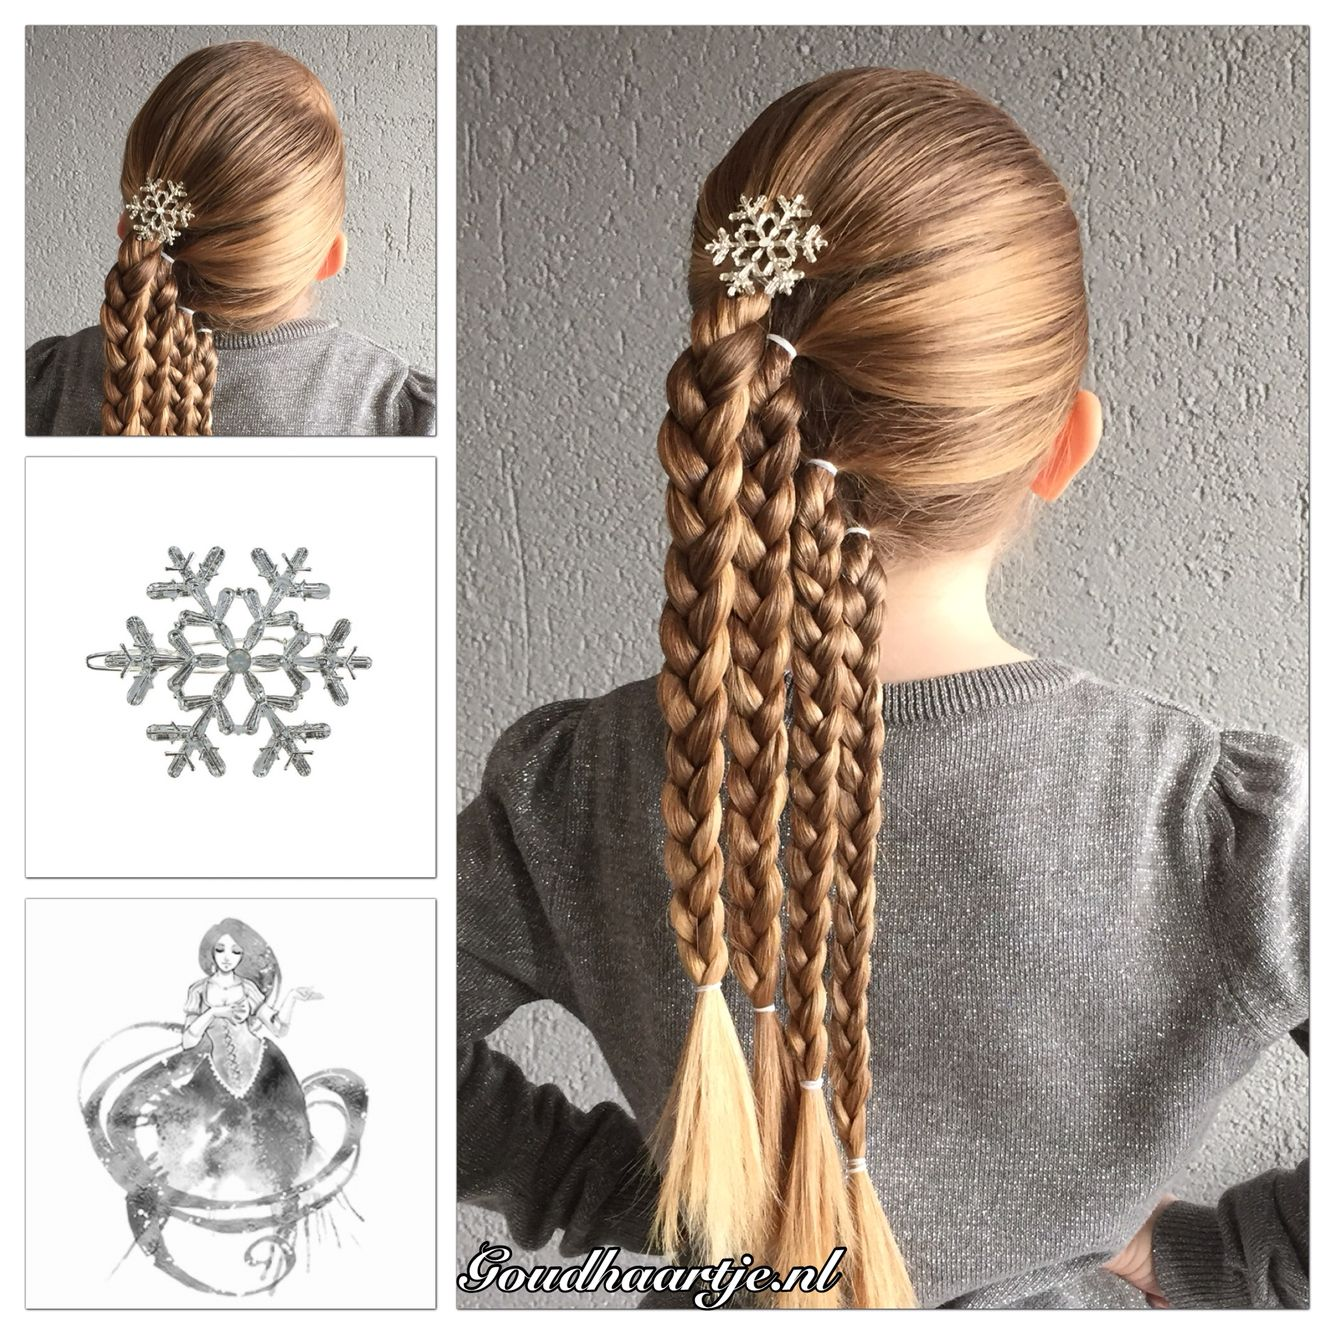 Boy hairstyle with braids this in french braids tho  fantasia  pinterest  french braid